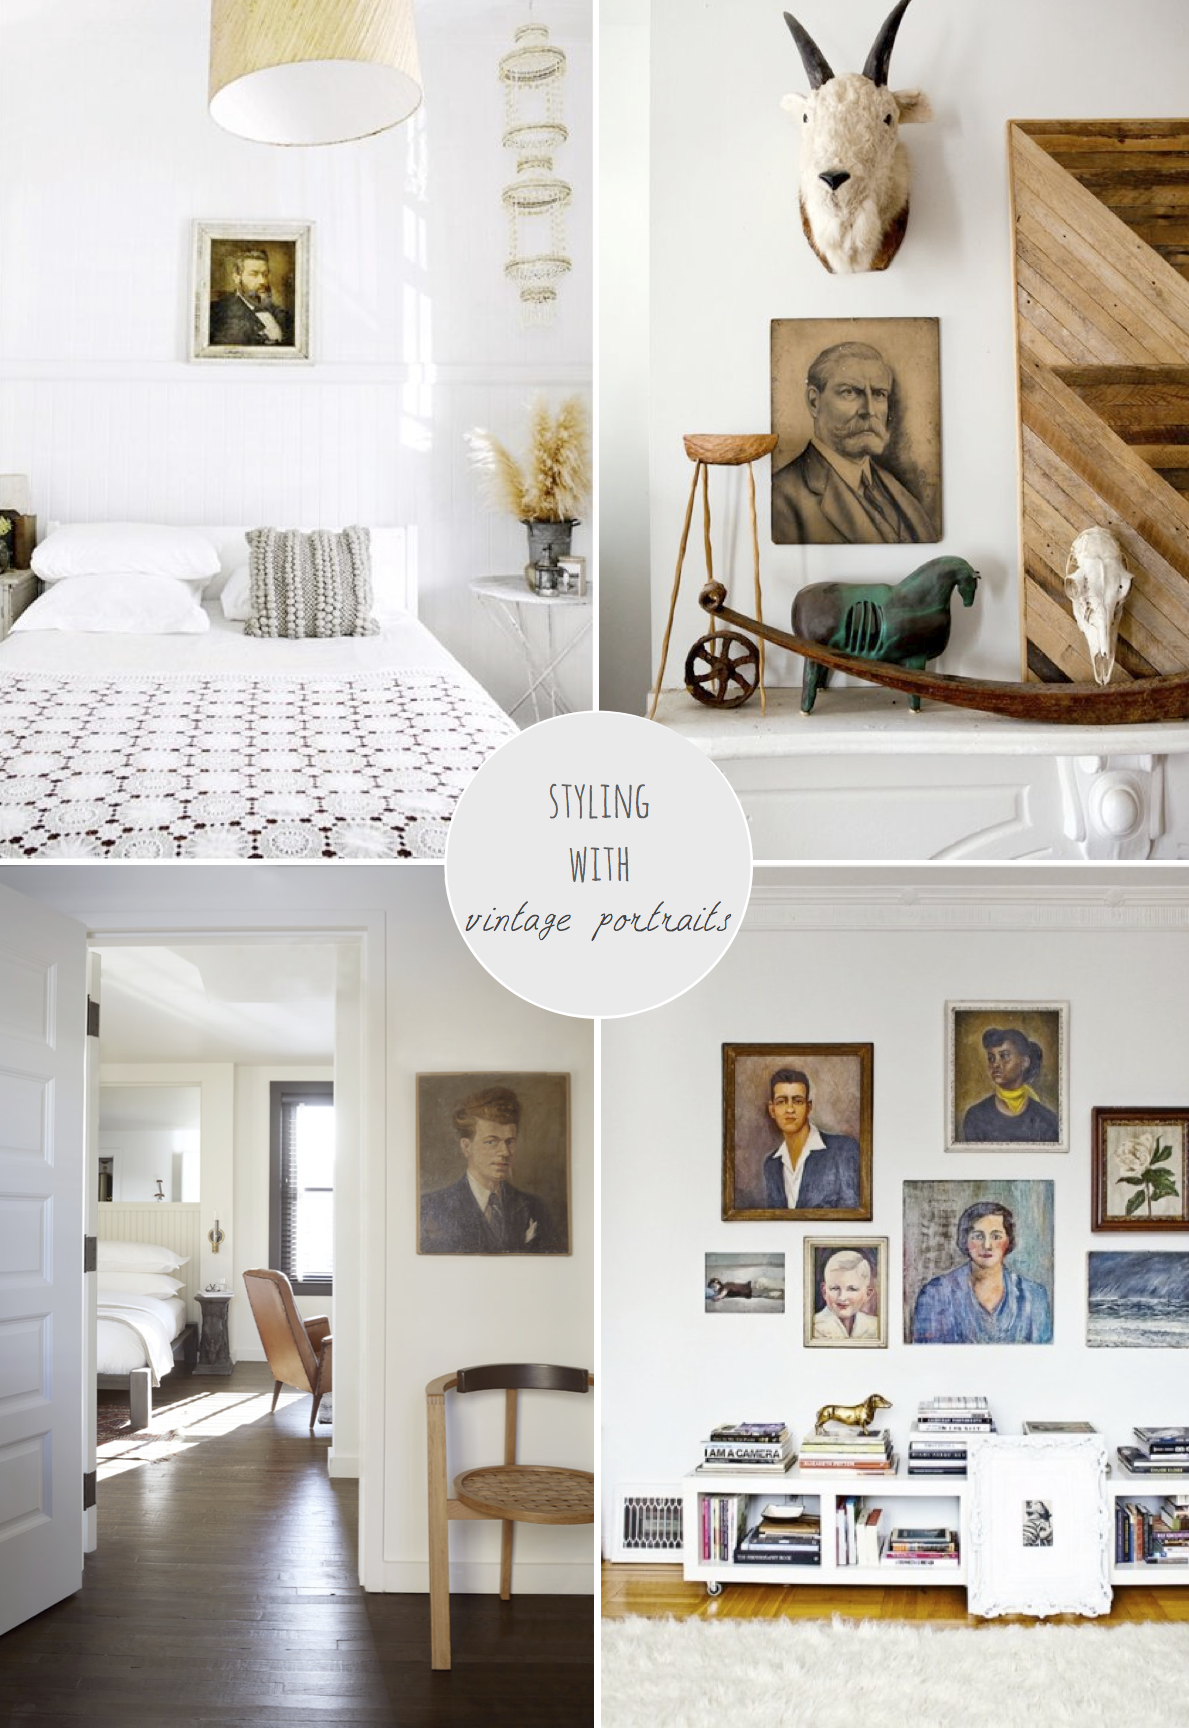 Styling With Vintage Portraits - Avenue Lifestyle Avenue Lifestyle